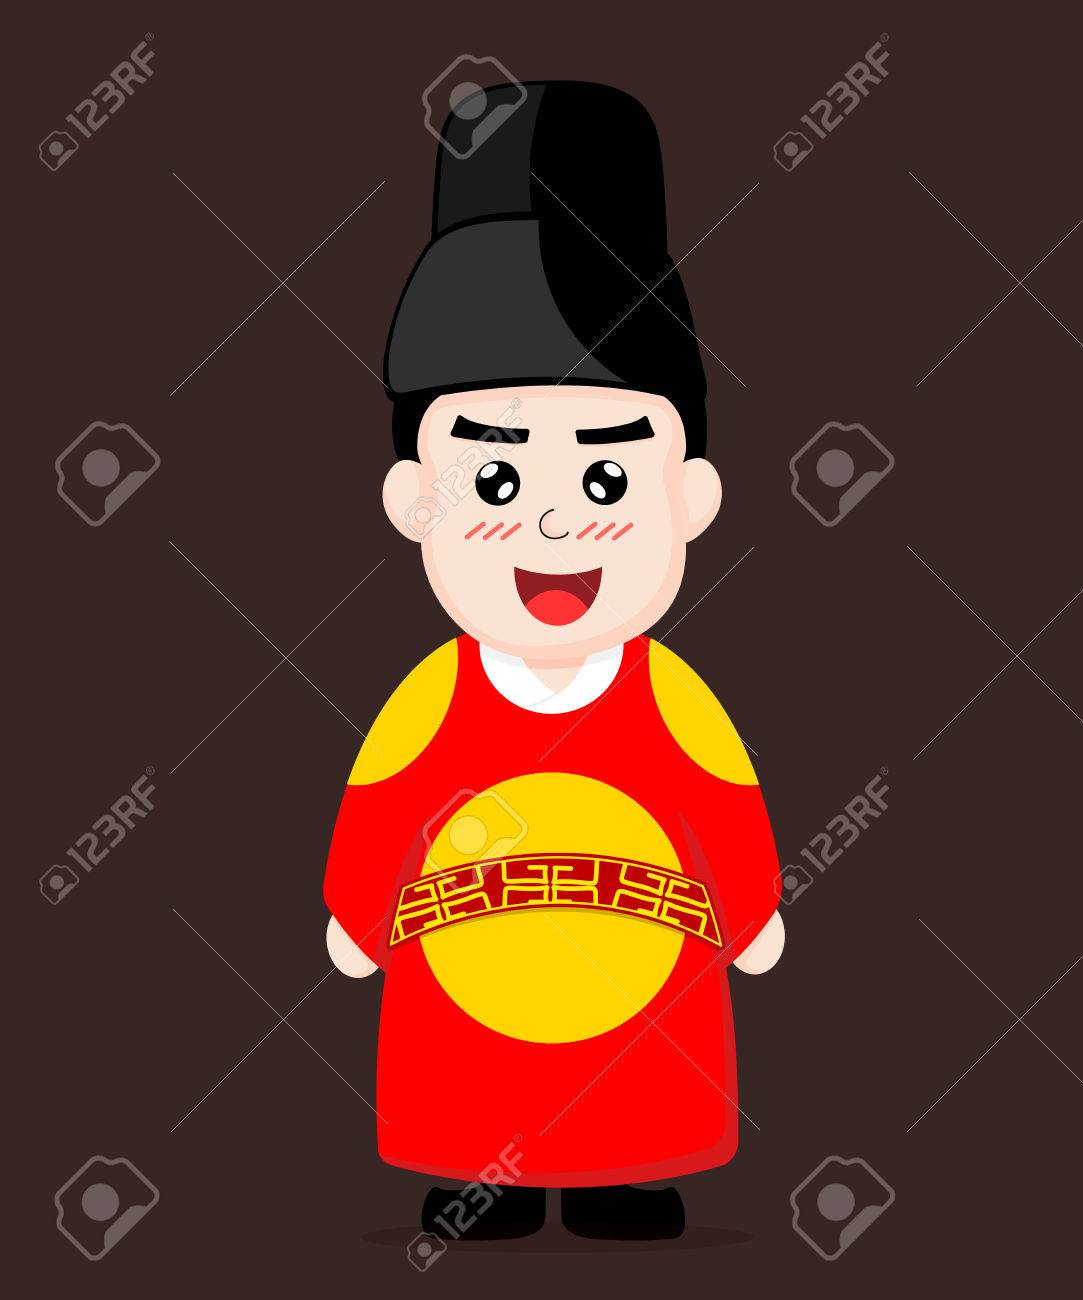 Korean King Dress cartoon